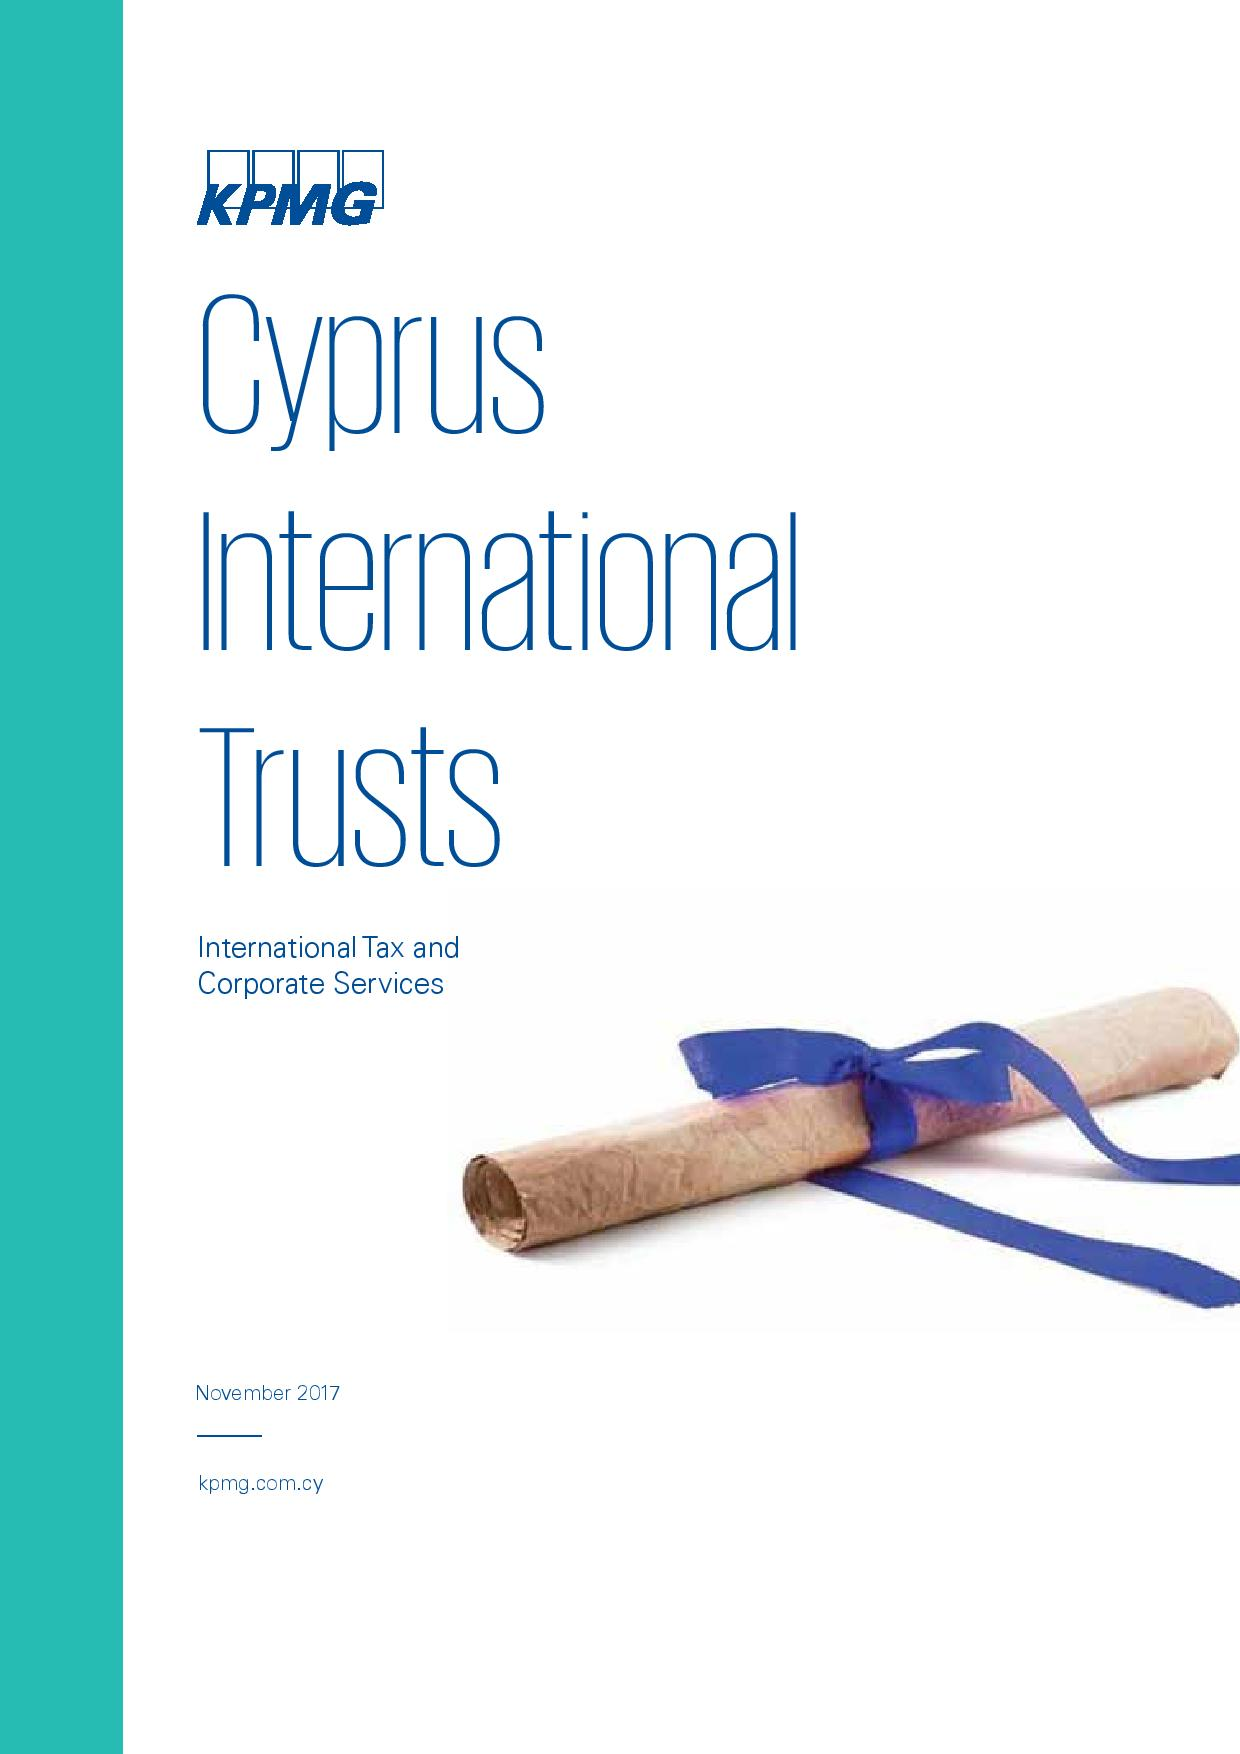 KPMG: Cyprus International Trusts